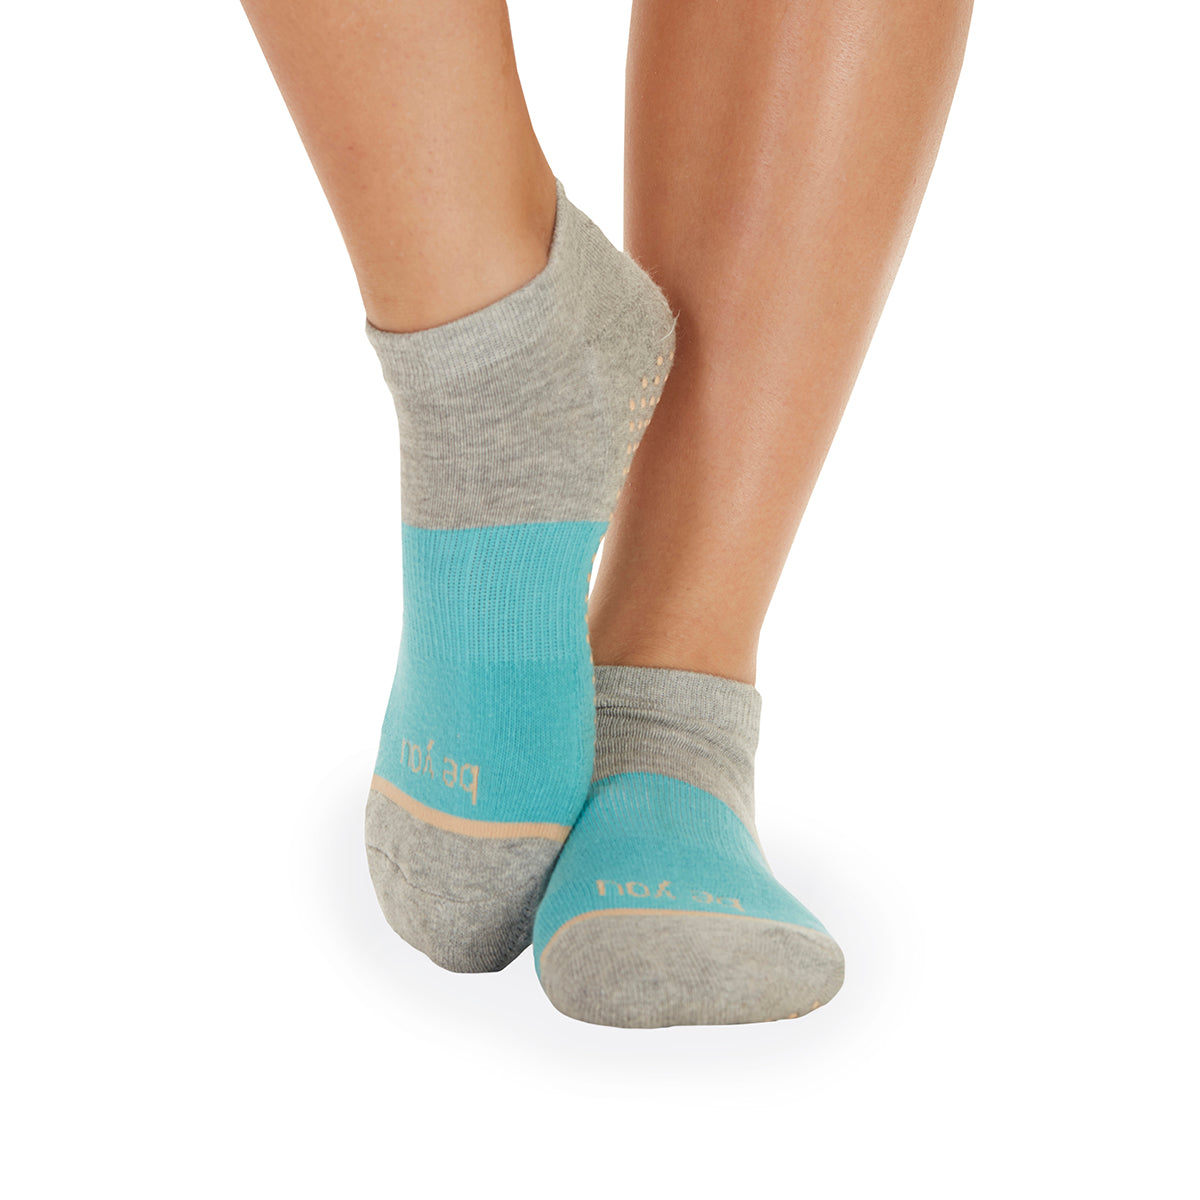 NEW! Be You Grace Grip Socks (Dream)